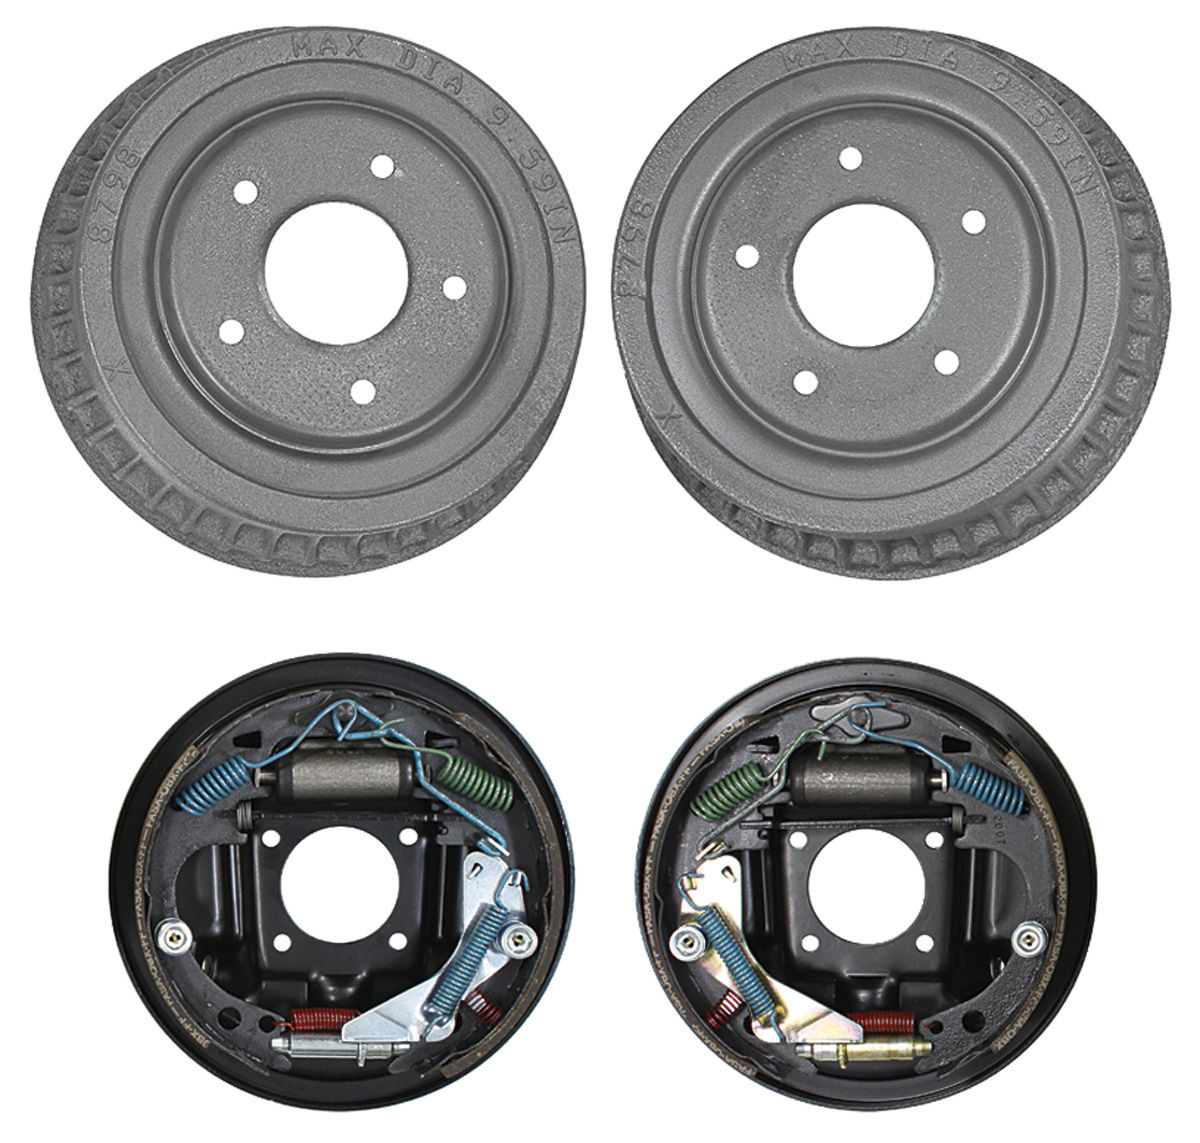 how to assemble rear drum brakes